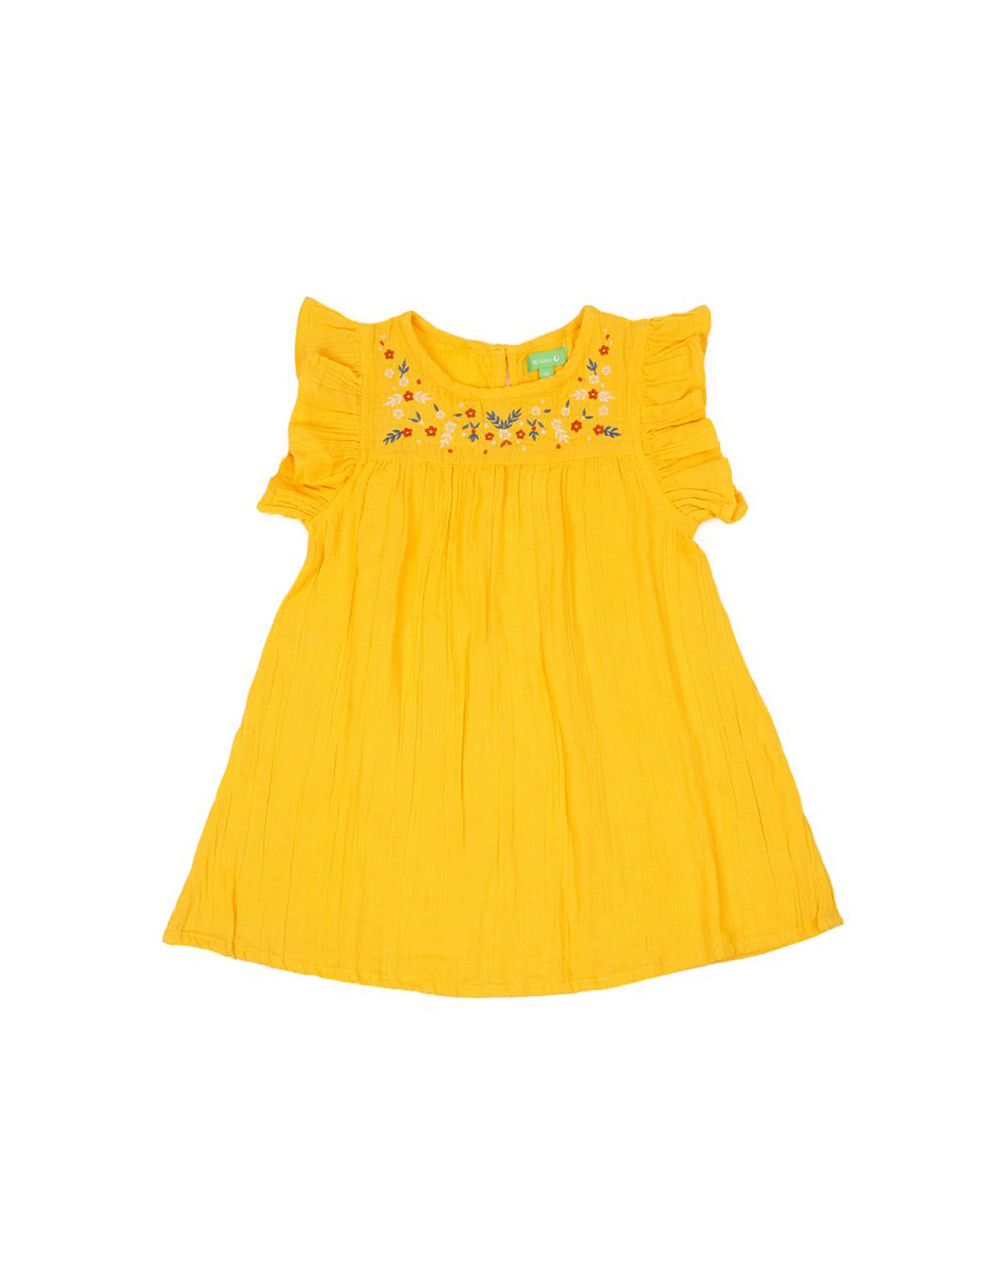 LILY BALOU  Nola Dress    Citrus